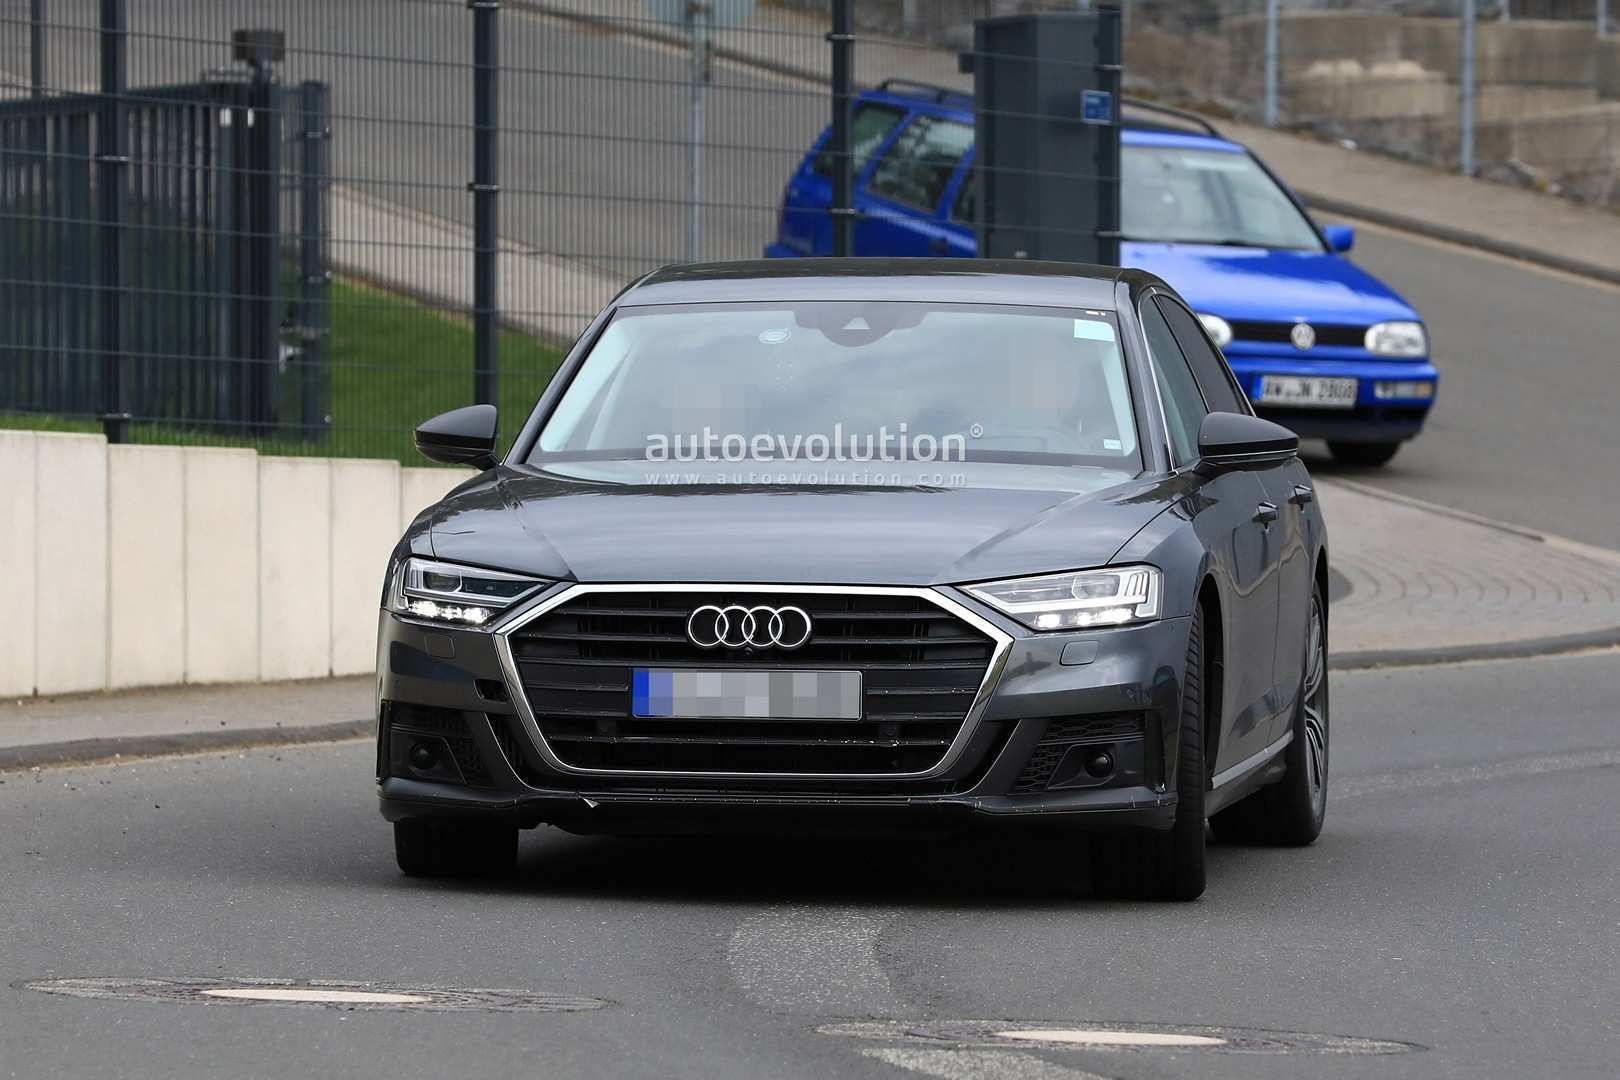 97 Gallery of Audi News 2020 Exterior by Audi News 2020